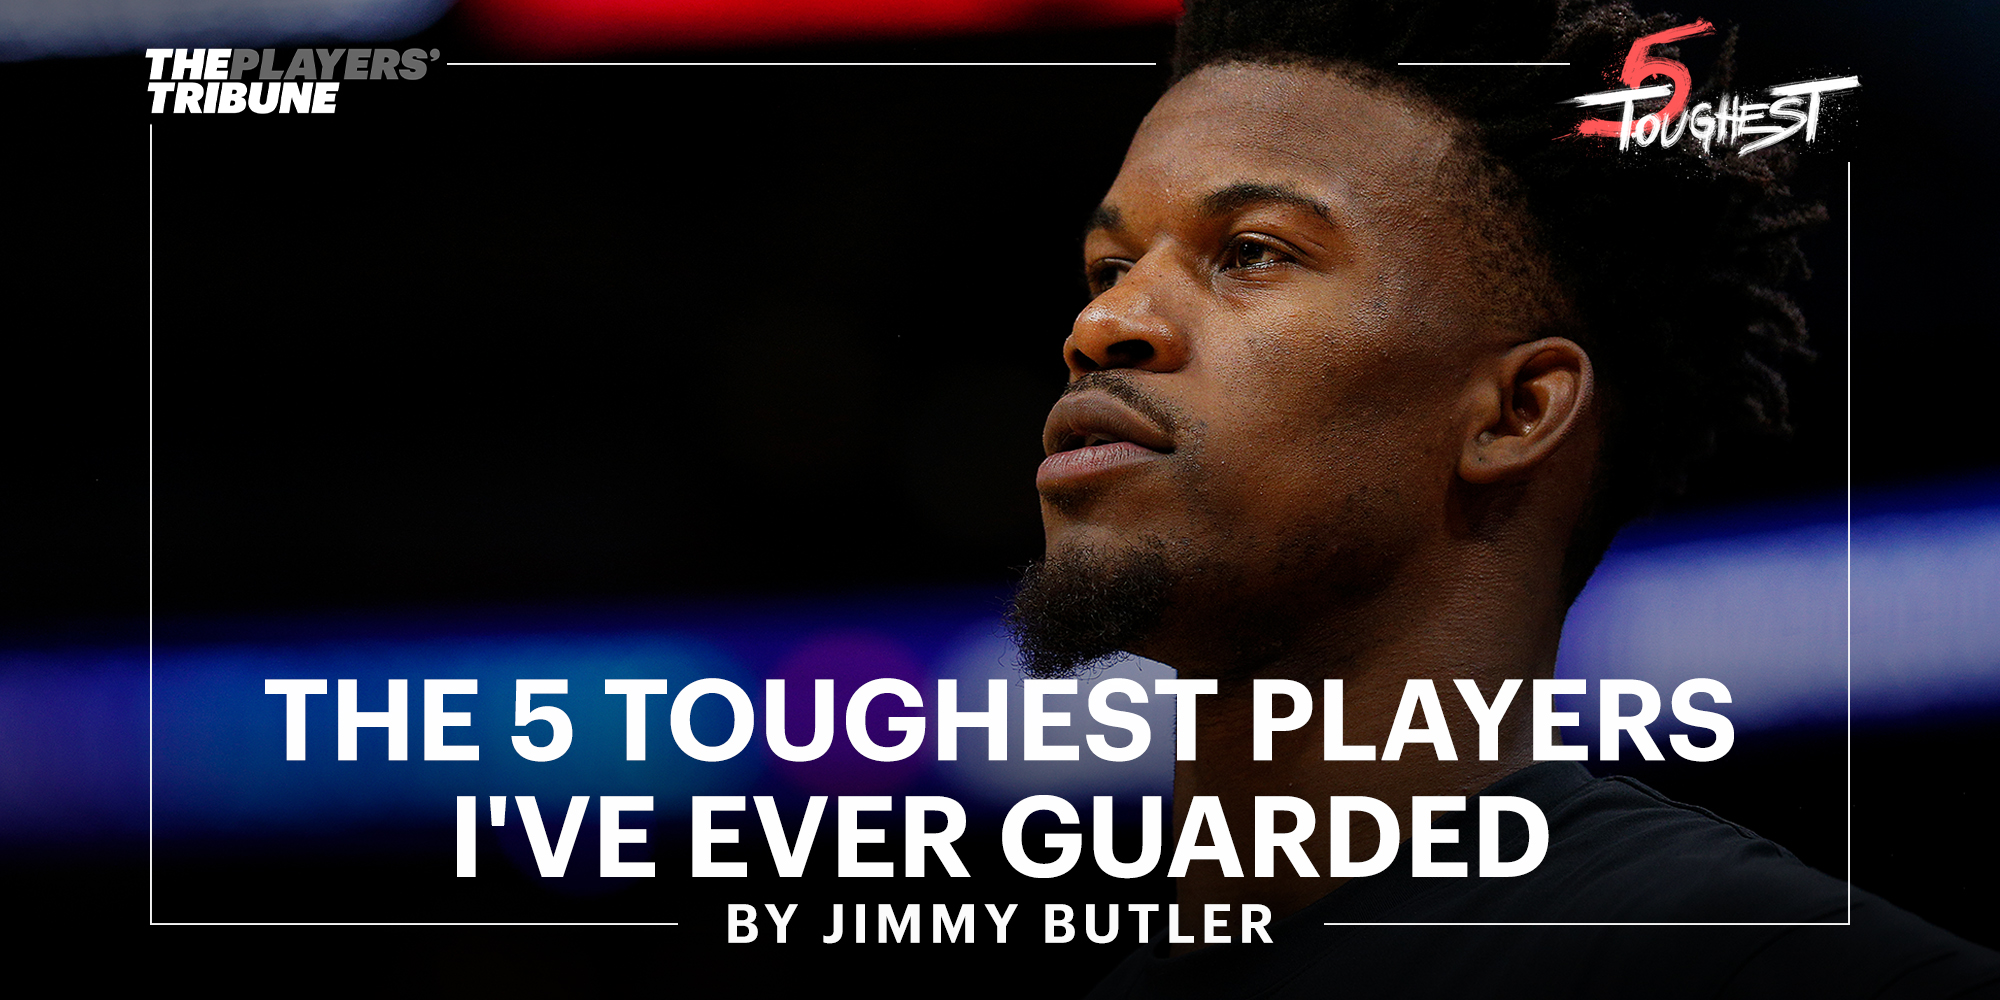 The 5 Toughest Players I've Ever Guarded